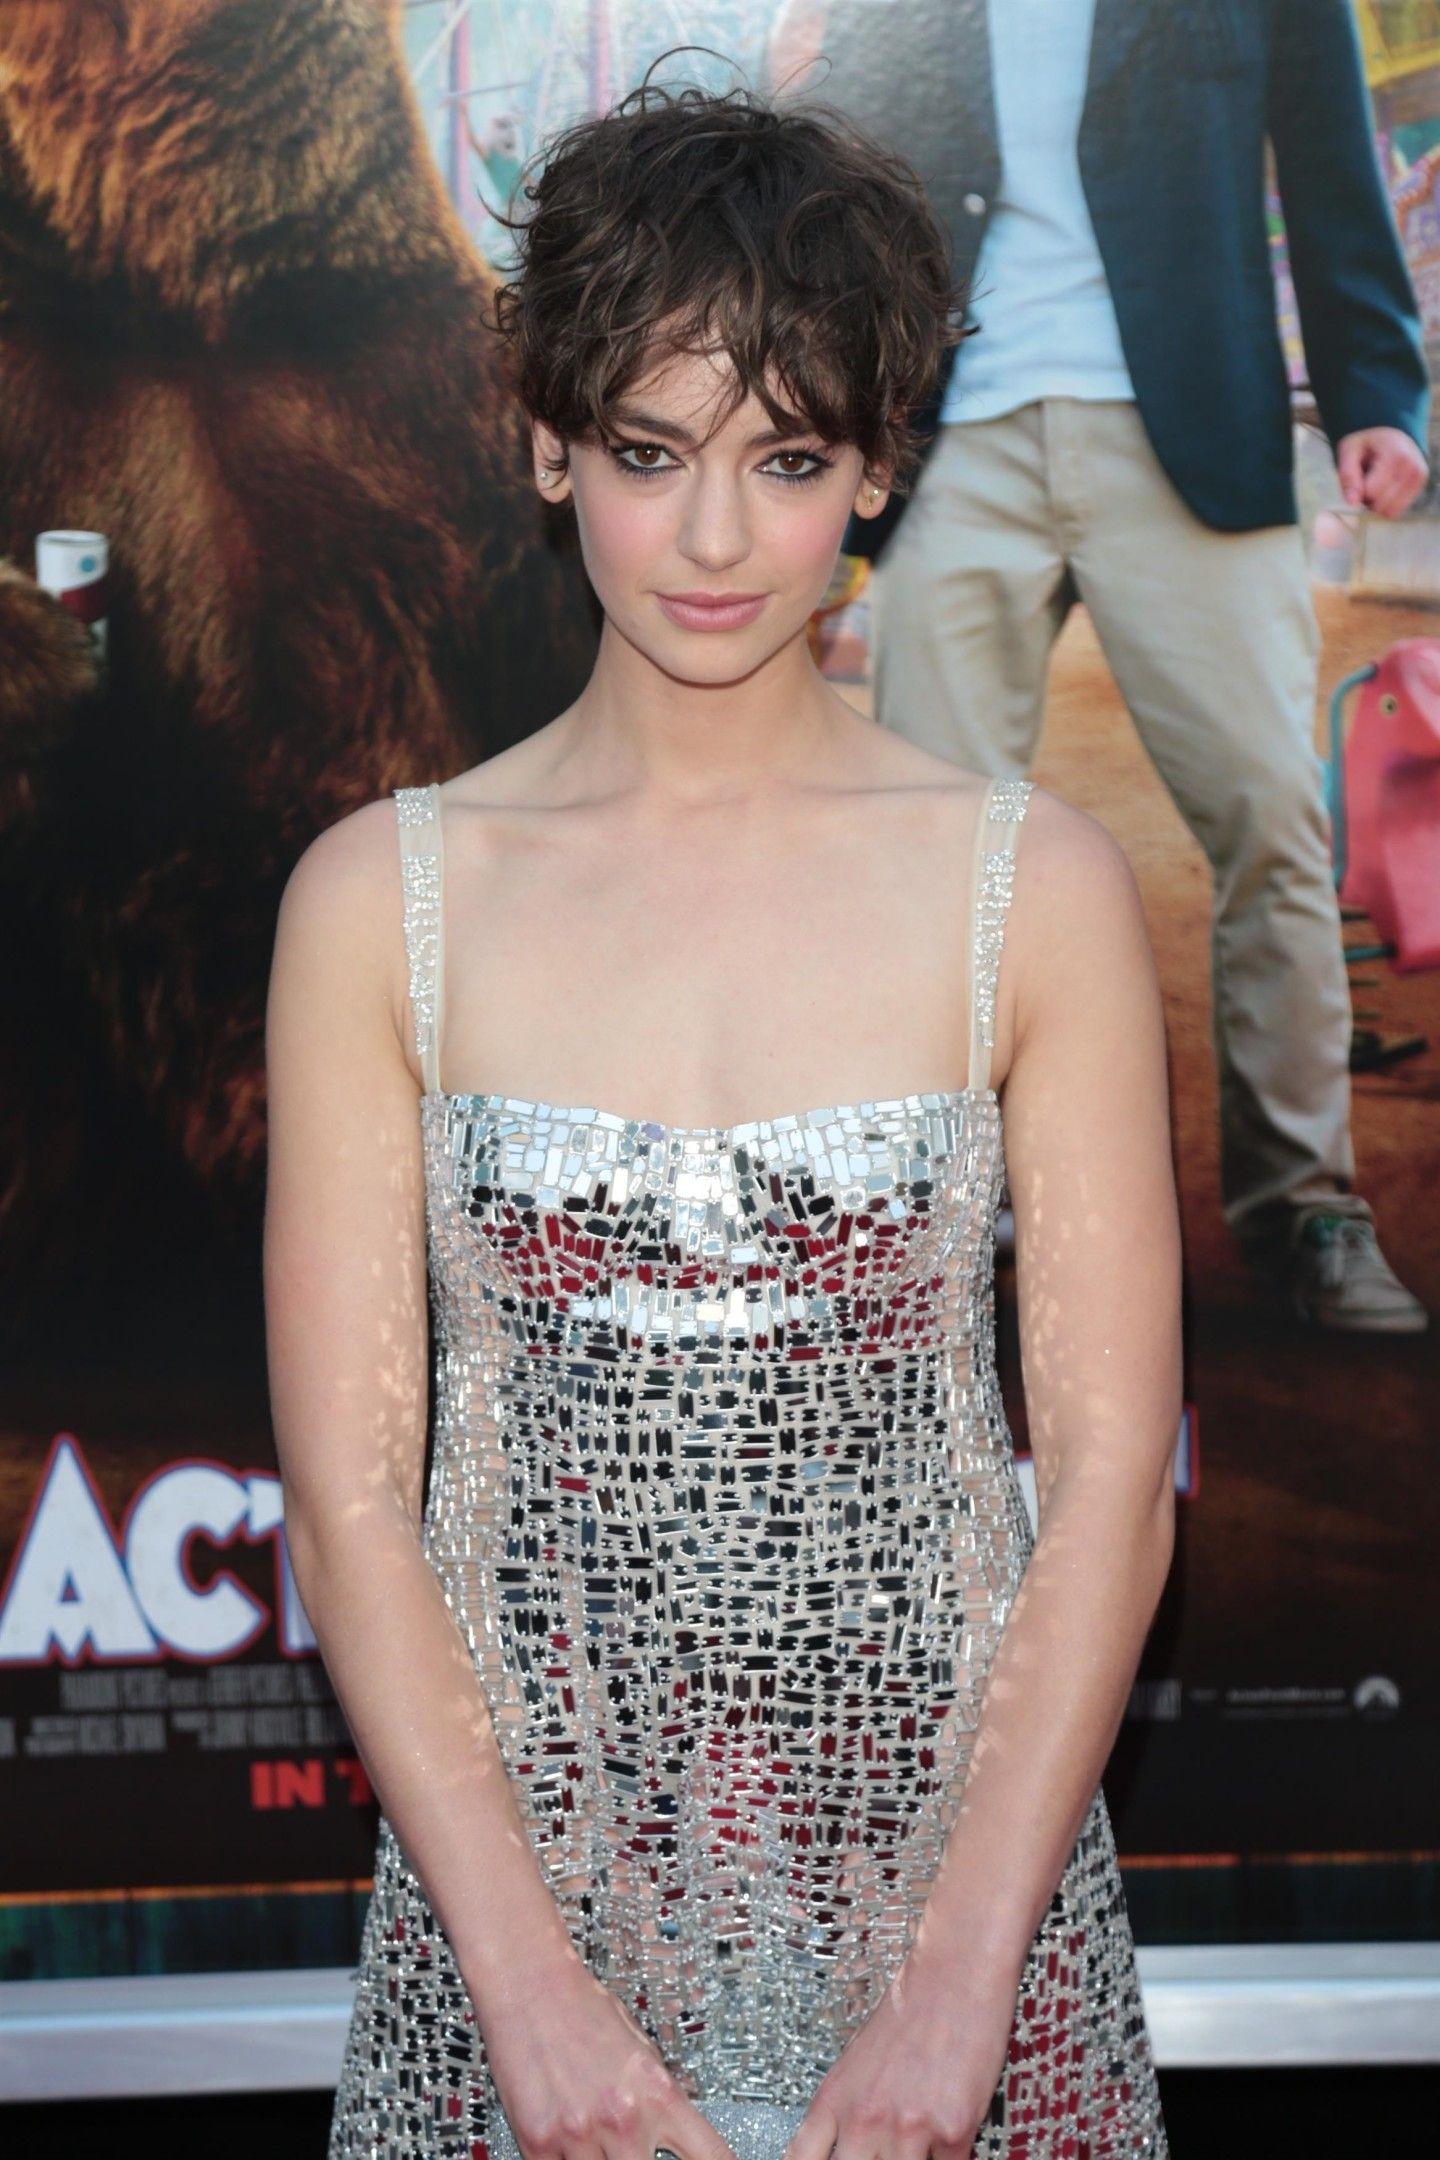 2019 Brigette Lundy-Paine nudes (22 foto and video), Topless, Sideboobs, Instagram, cameltoe 2006